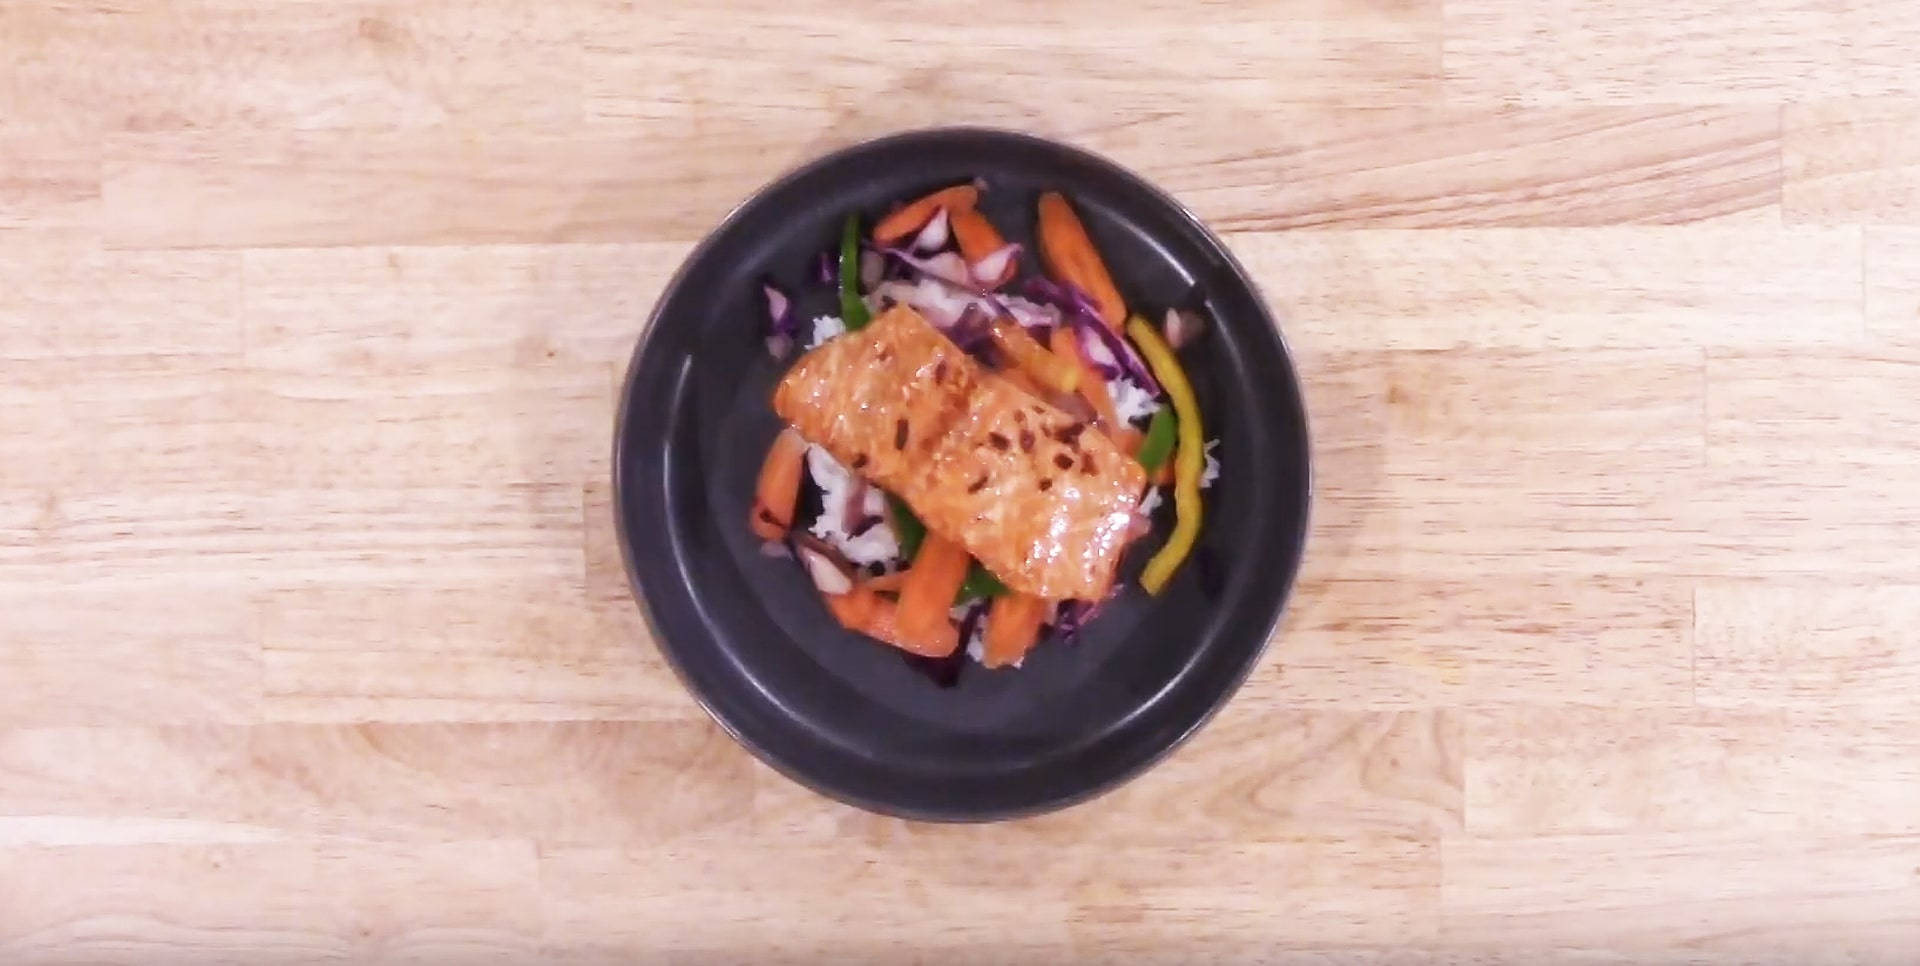 Savory Broiled Salmon with Santa Monica Seafood Poke Dressing